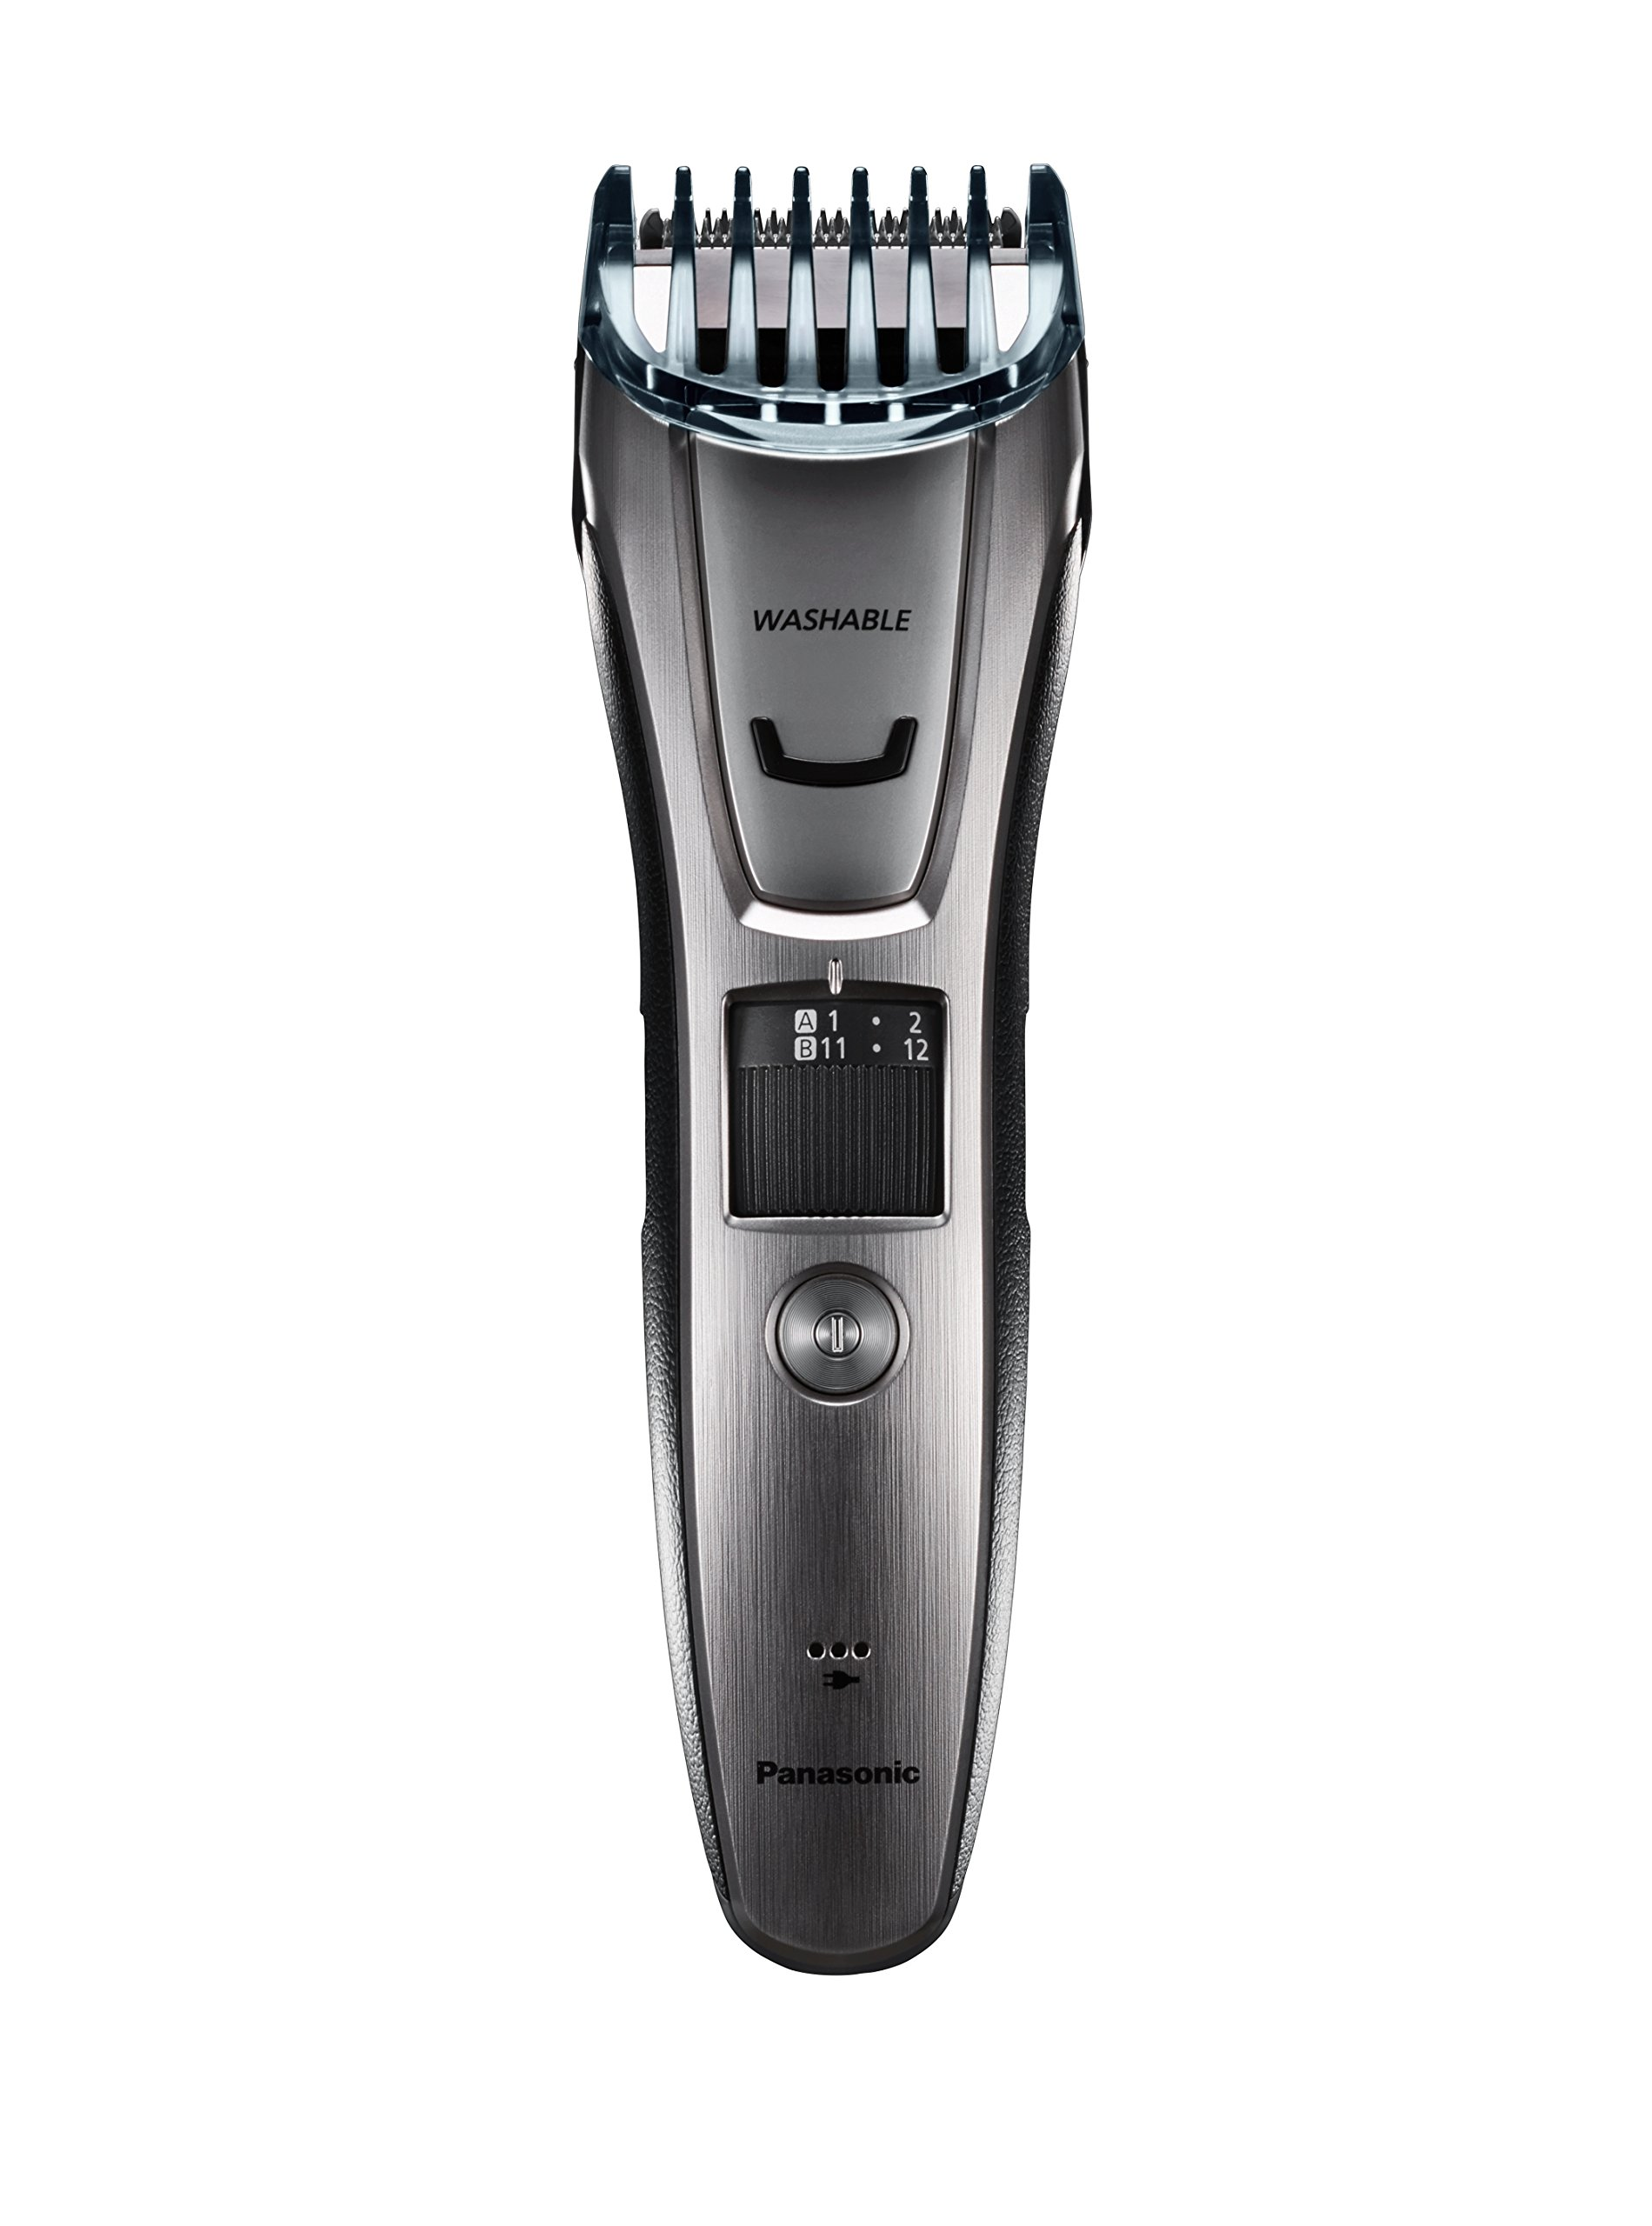 Panasonic ER-GB80-S Body and Beard Trimmer, Hair Clipper, Men's, Cordless/Corded Operation with 3 Comb Attachments and 39 Adjustable Trim Settings, Washable by Panasonic (Image #7)